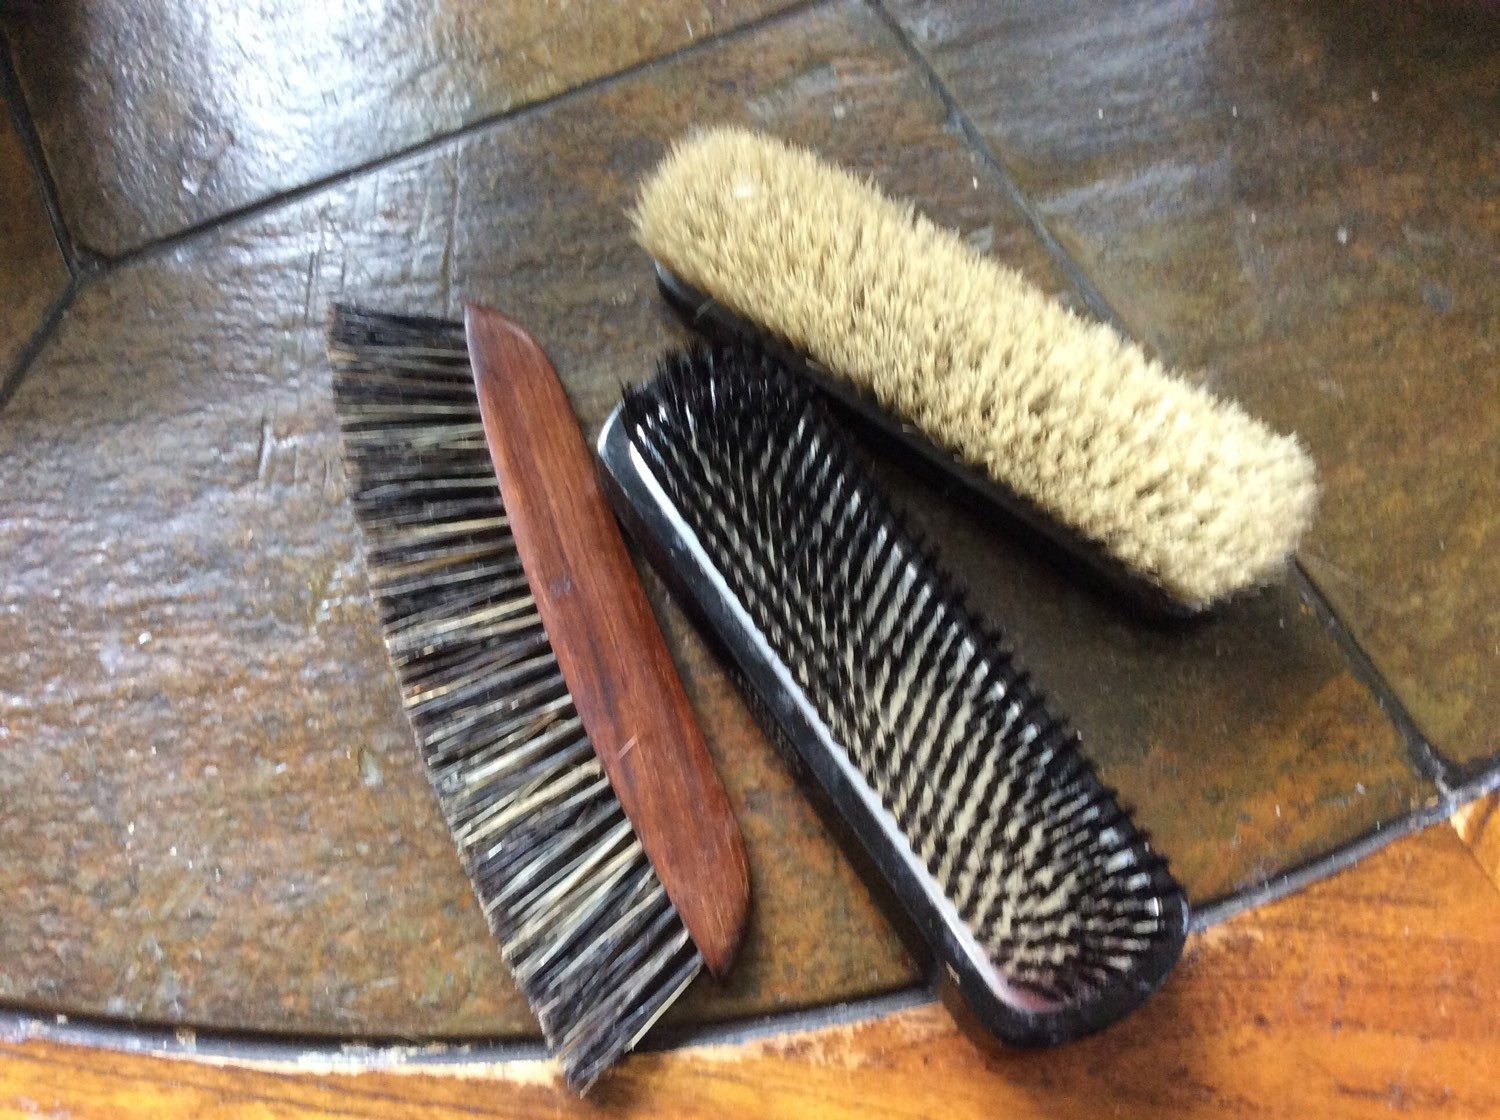 Set 3 personal grooming brushes 2 are pure Bristle Brushes vintage clothes brush - http://bit.ly/1KCFIBi